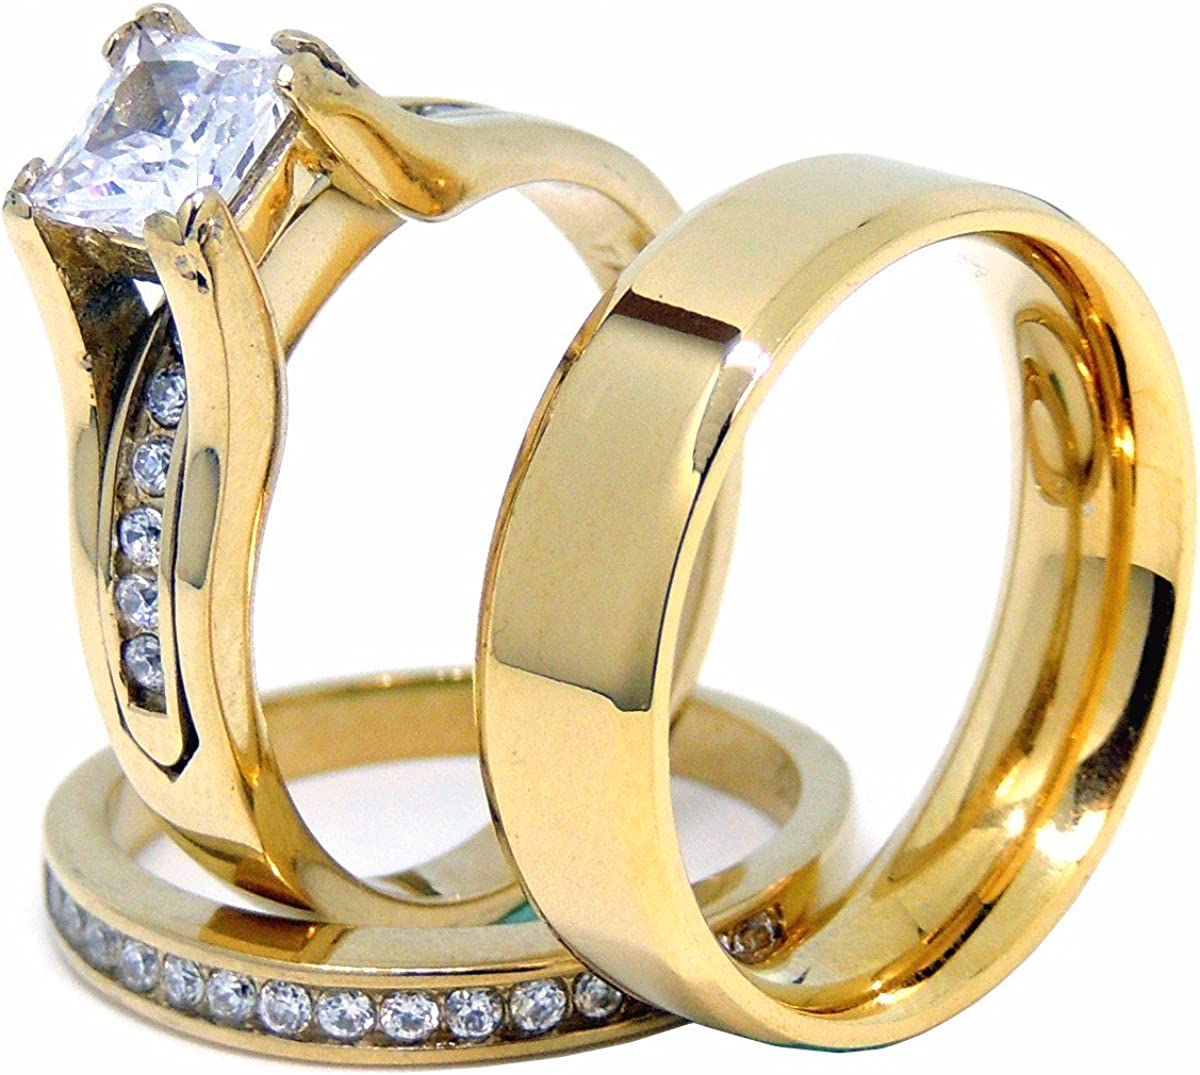 Couples Ring Set Womens 14K Gold Plated Princess CZ Engagement Ring Mens Gold Plated Flat Wedding Band